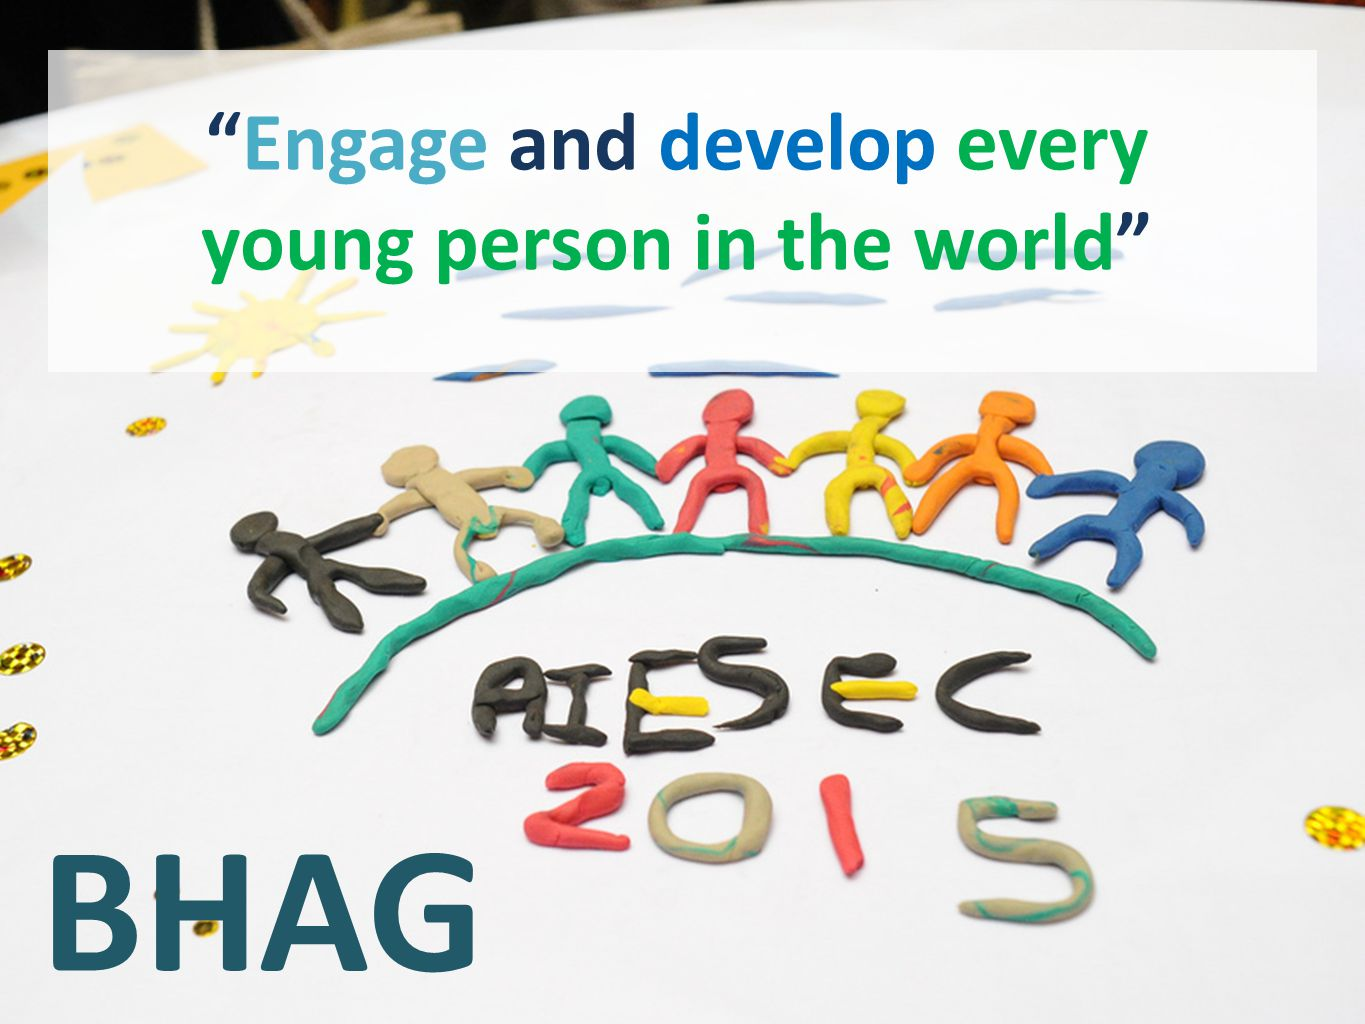 Engage and develop every young person in the world